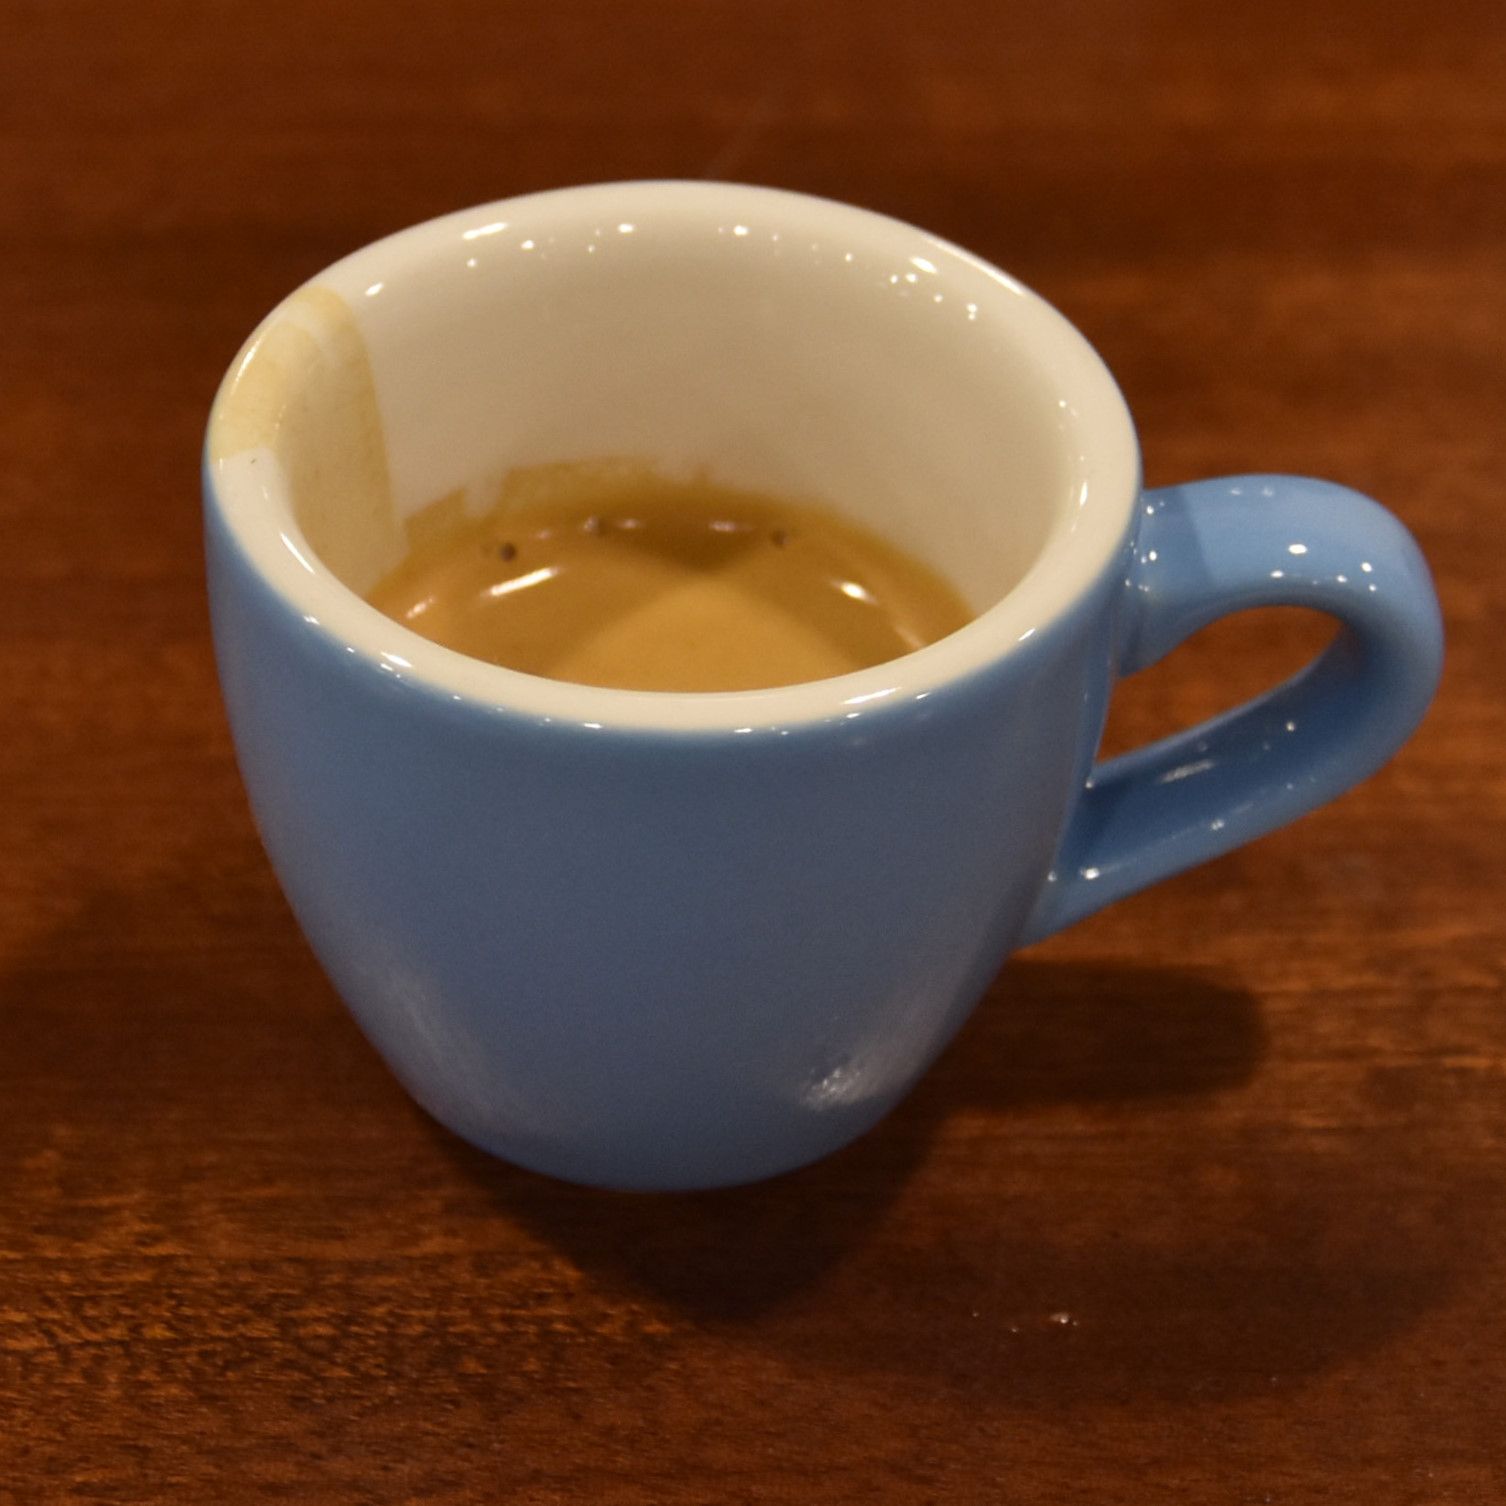 A single-origin Colombian espresso, roasted by Onyx, from Arkansas, and served, in a classic blue cup, by Pax Treme in New Orleans.